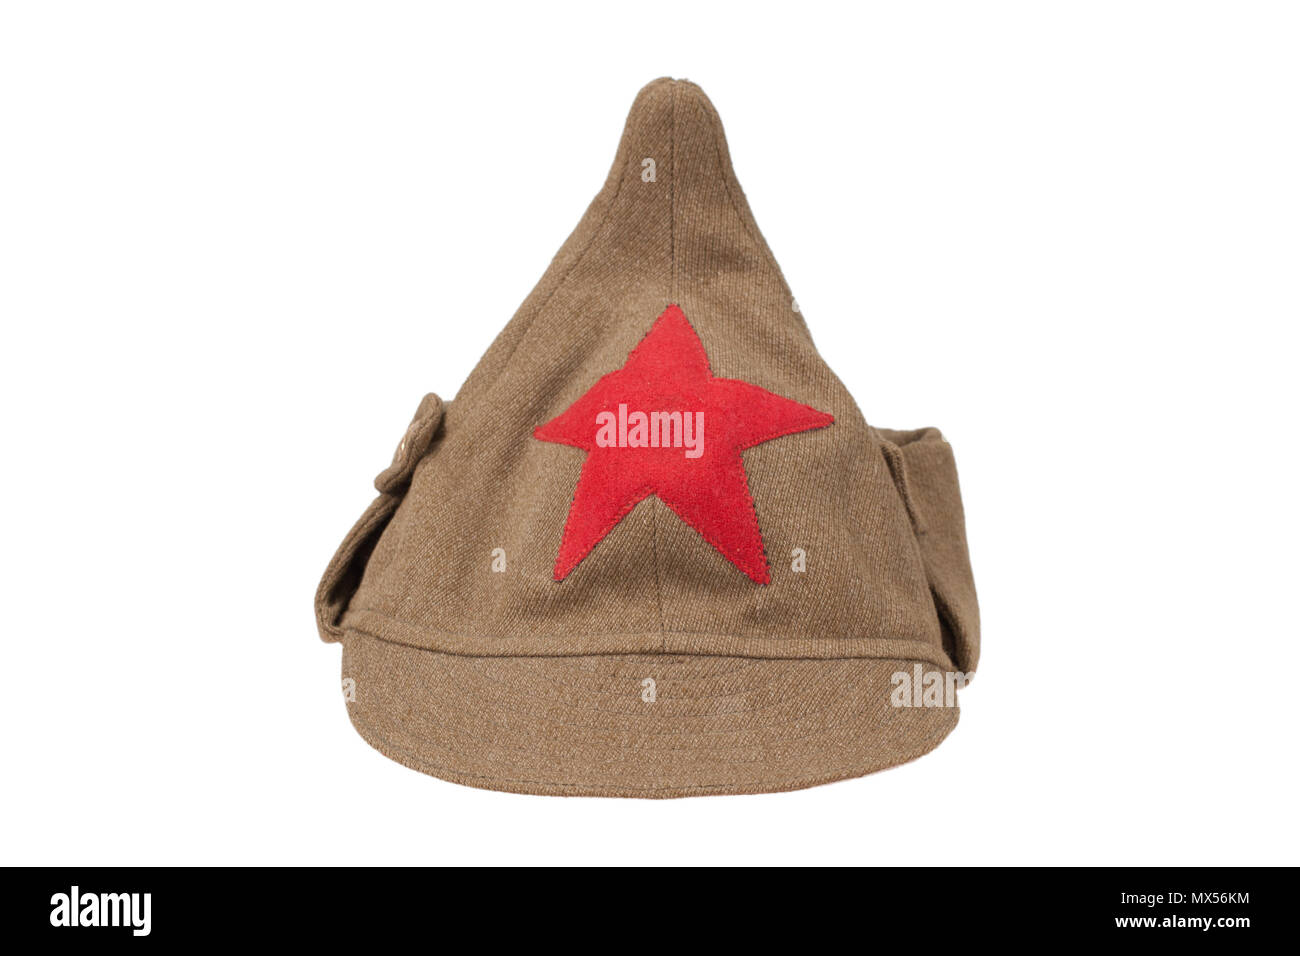 "soviet army cap ""Budenovka"" isolated on white background Stock Photo"